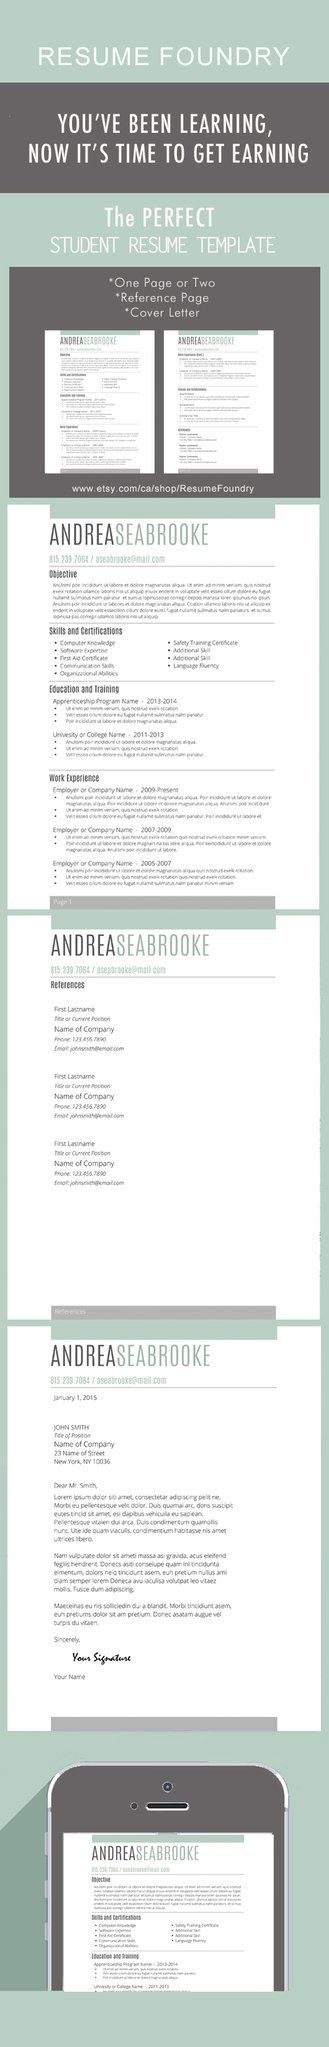 resume templates students perfect samples for canada high school with little experience